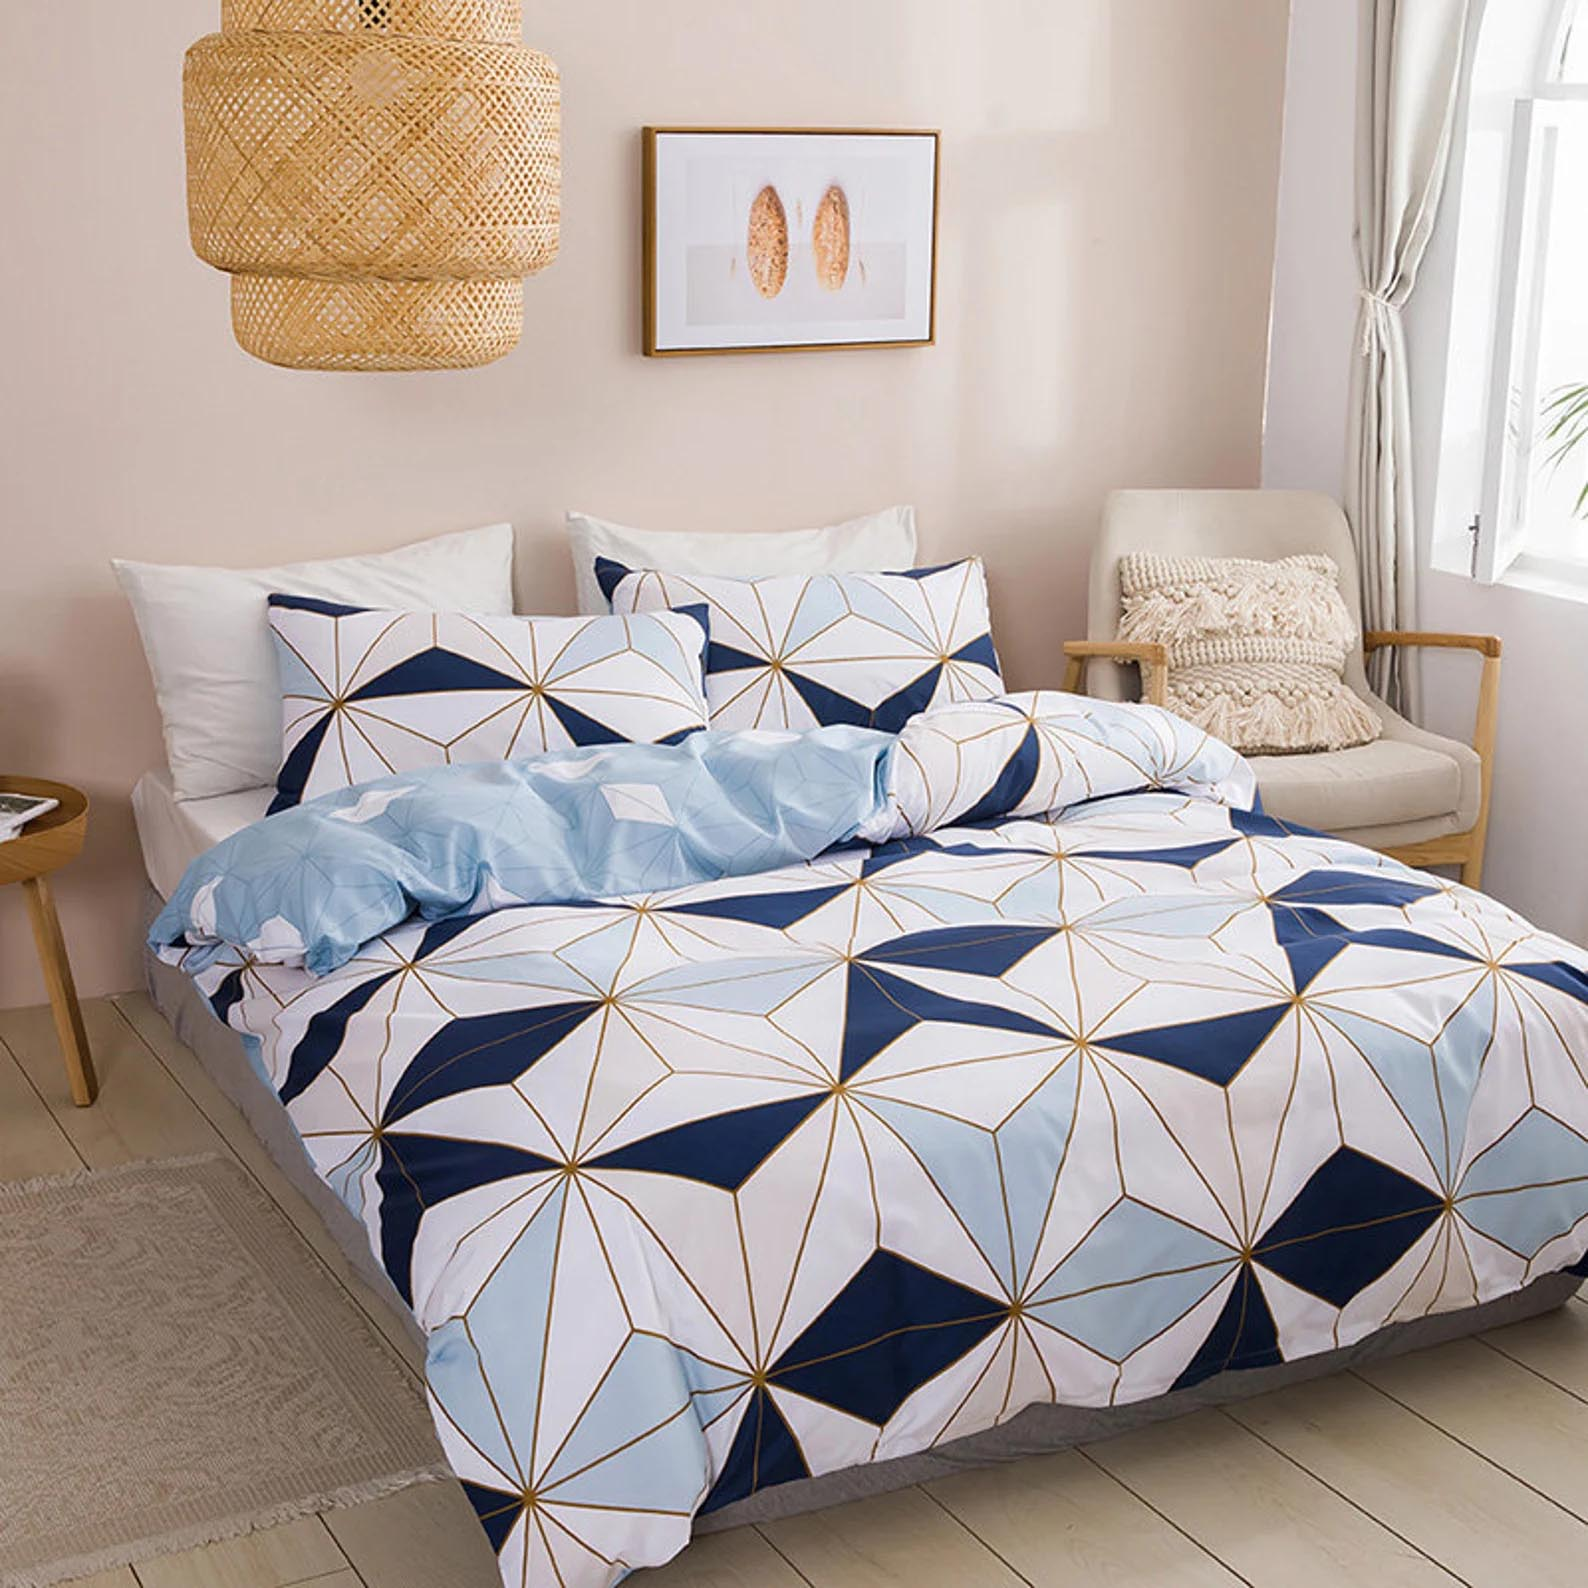 Modern Bedroom Decor - Geometric bedding with pastel colors.